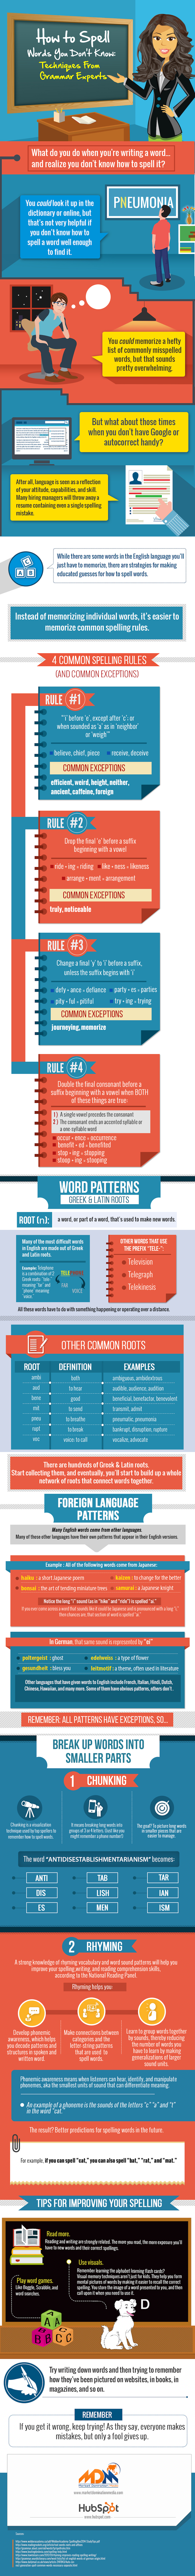 How to Spell Words You Don't Know [Infographic]